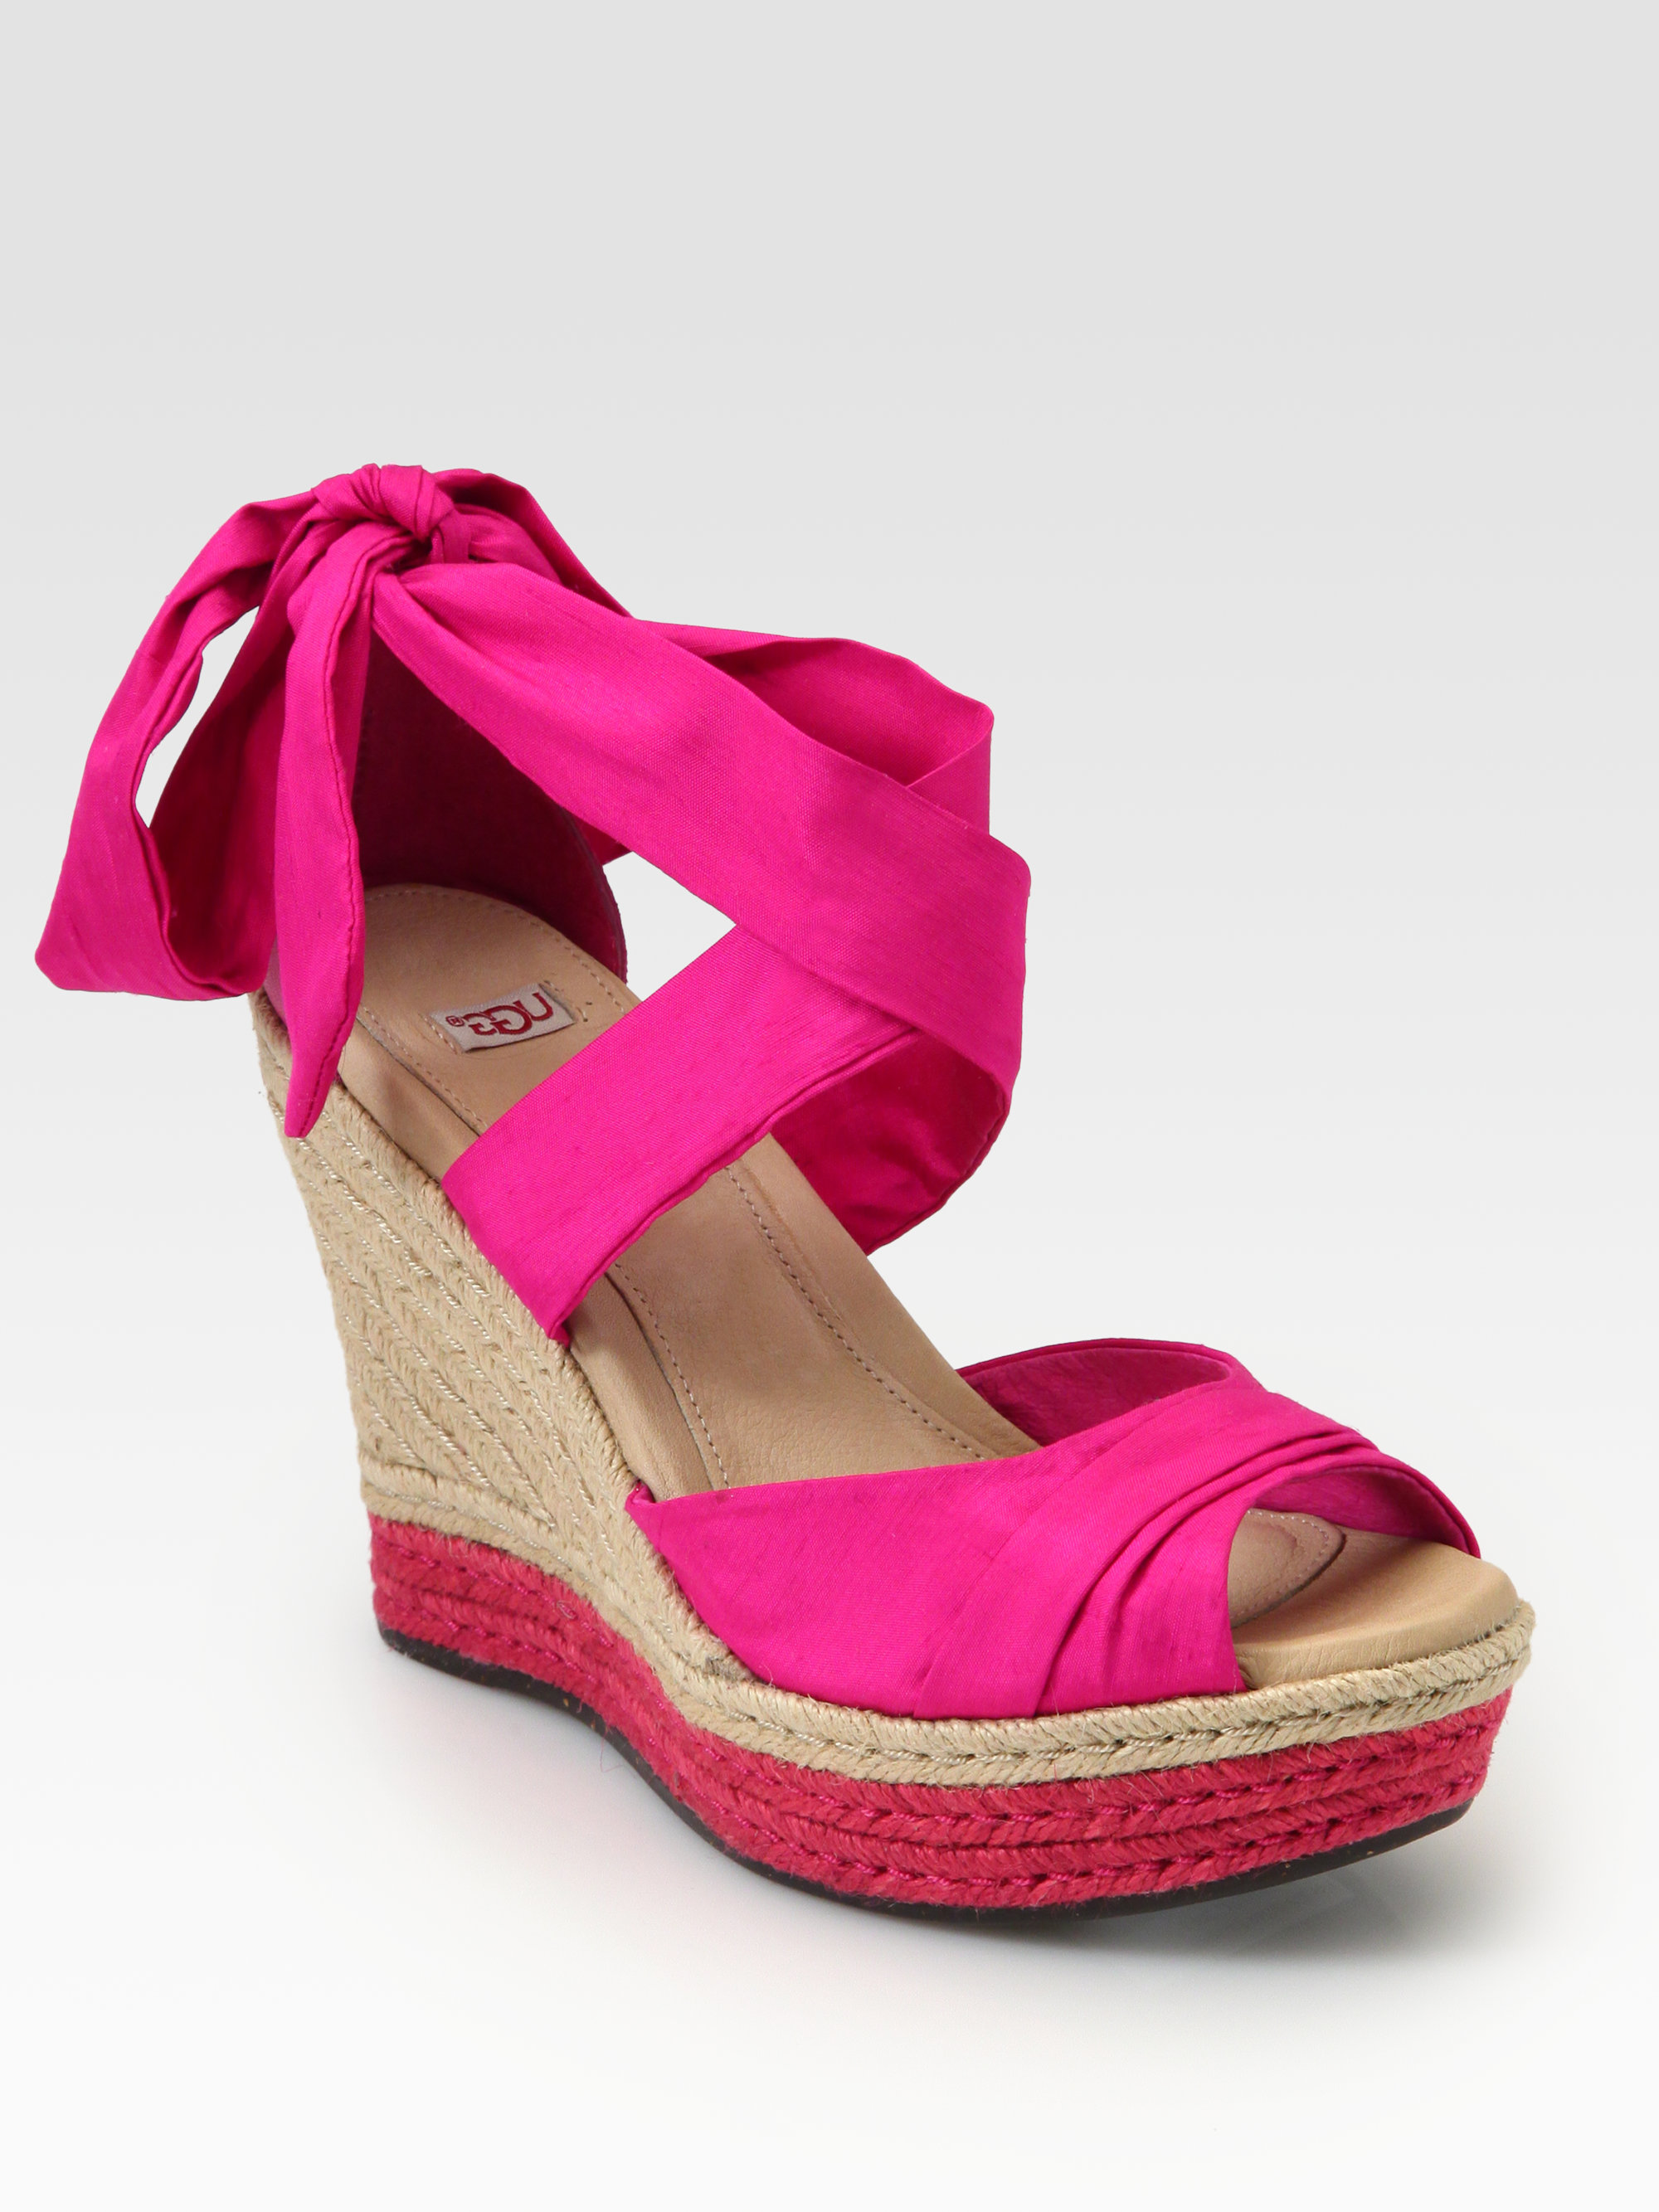 612bc158497 Lyst - UGG Lucianna Silk Leather Espadrille Wedges in Pink